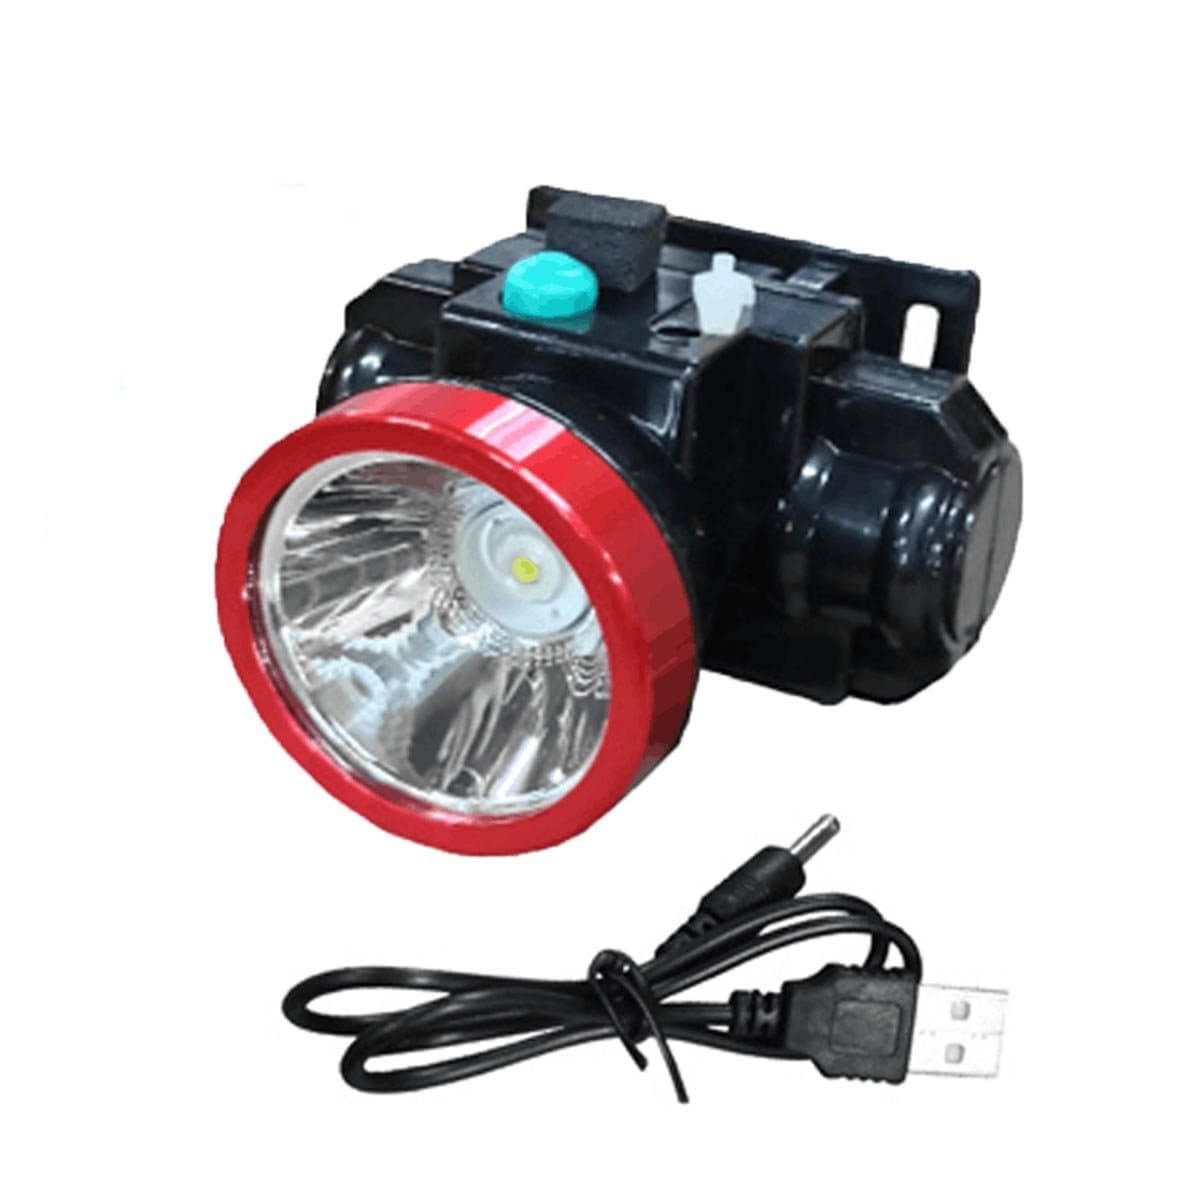 BOSSMAN Rechargeable LED Headlight BLH15W